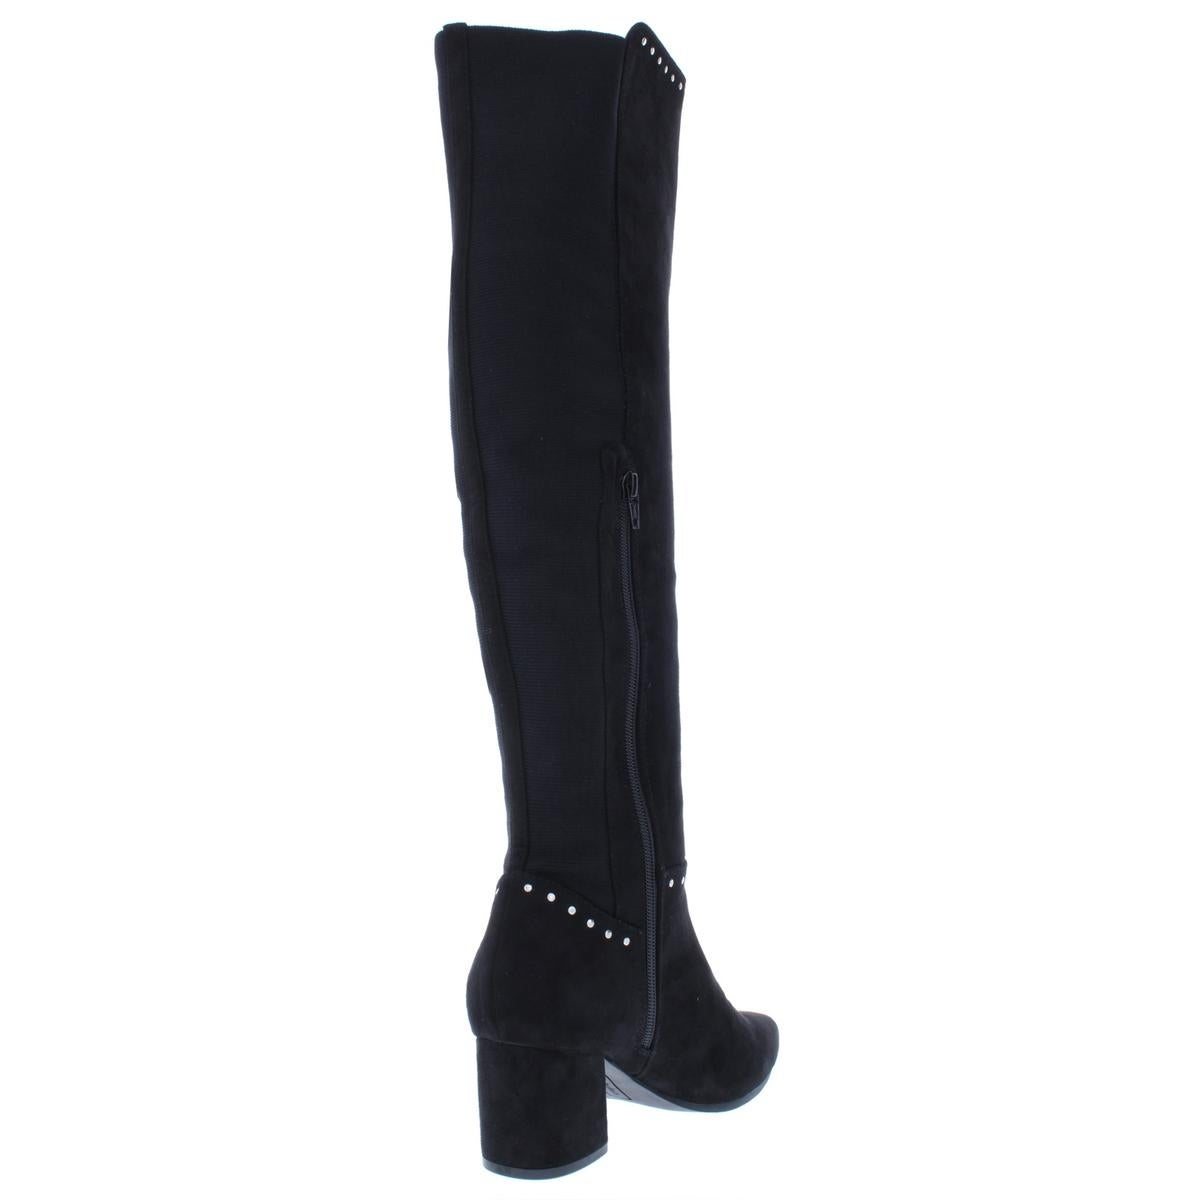 8cb720e19f3 Shop Seven Dials Womens Nicki Over-The-Knee Boots Studded Faux Suede - Free  Shipping On Orders Over  45 - Overstock - 24186669